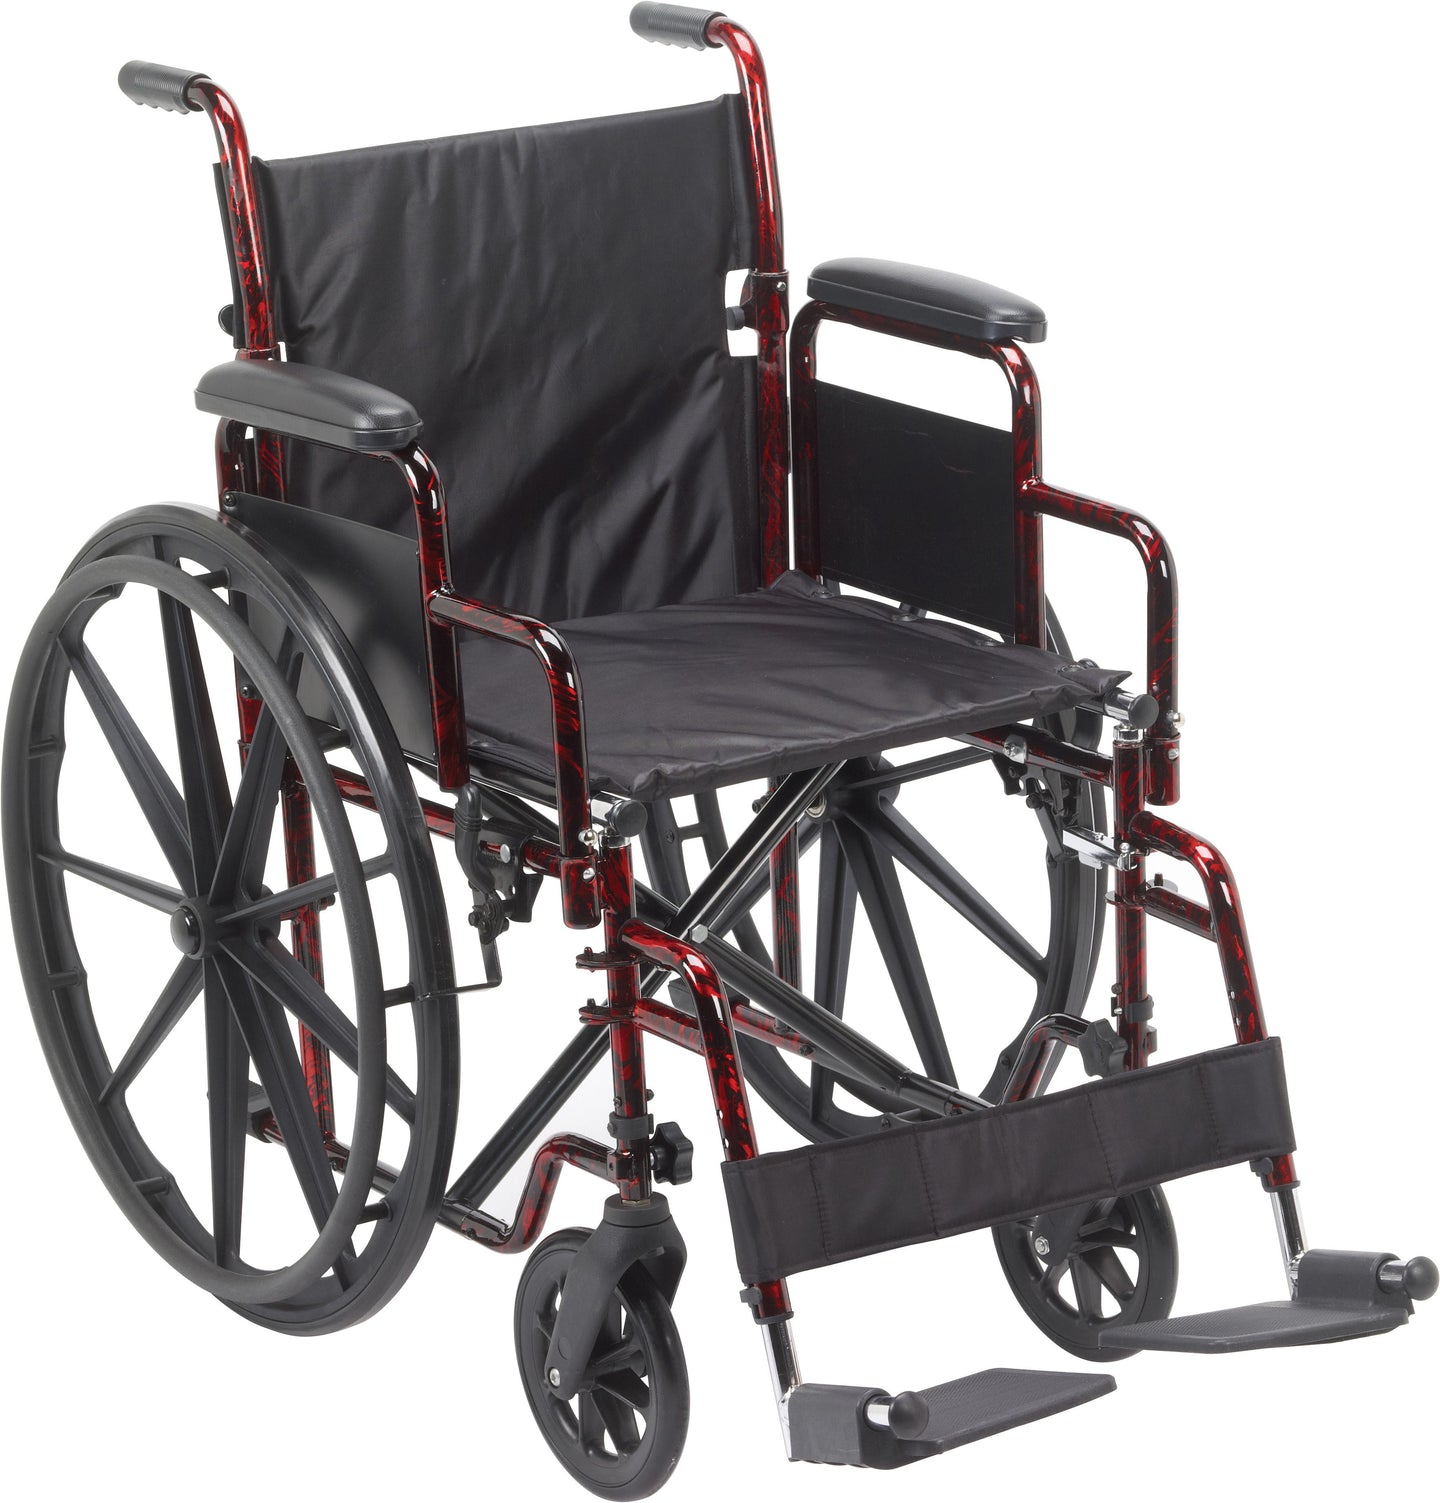 Drive Rebel Lightweight Wheelchair